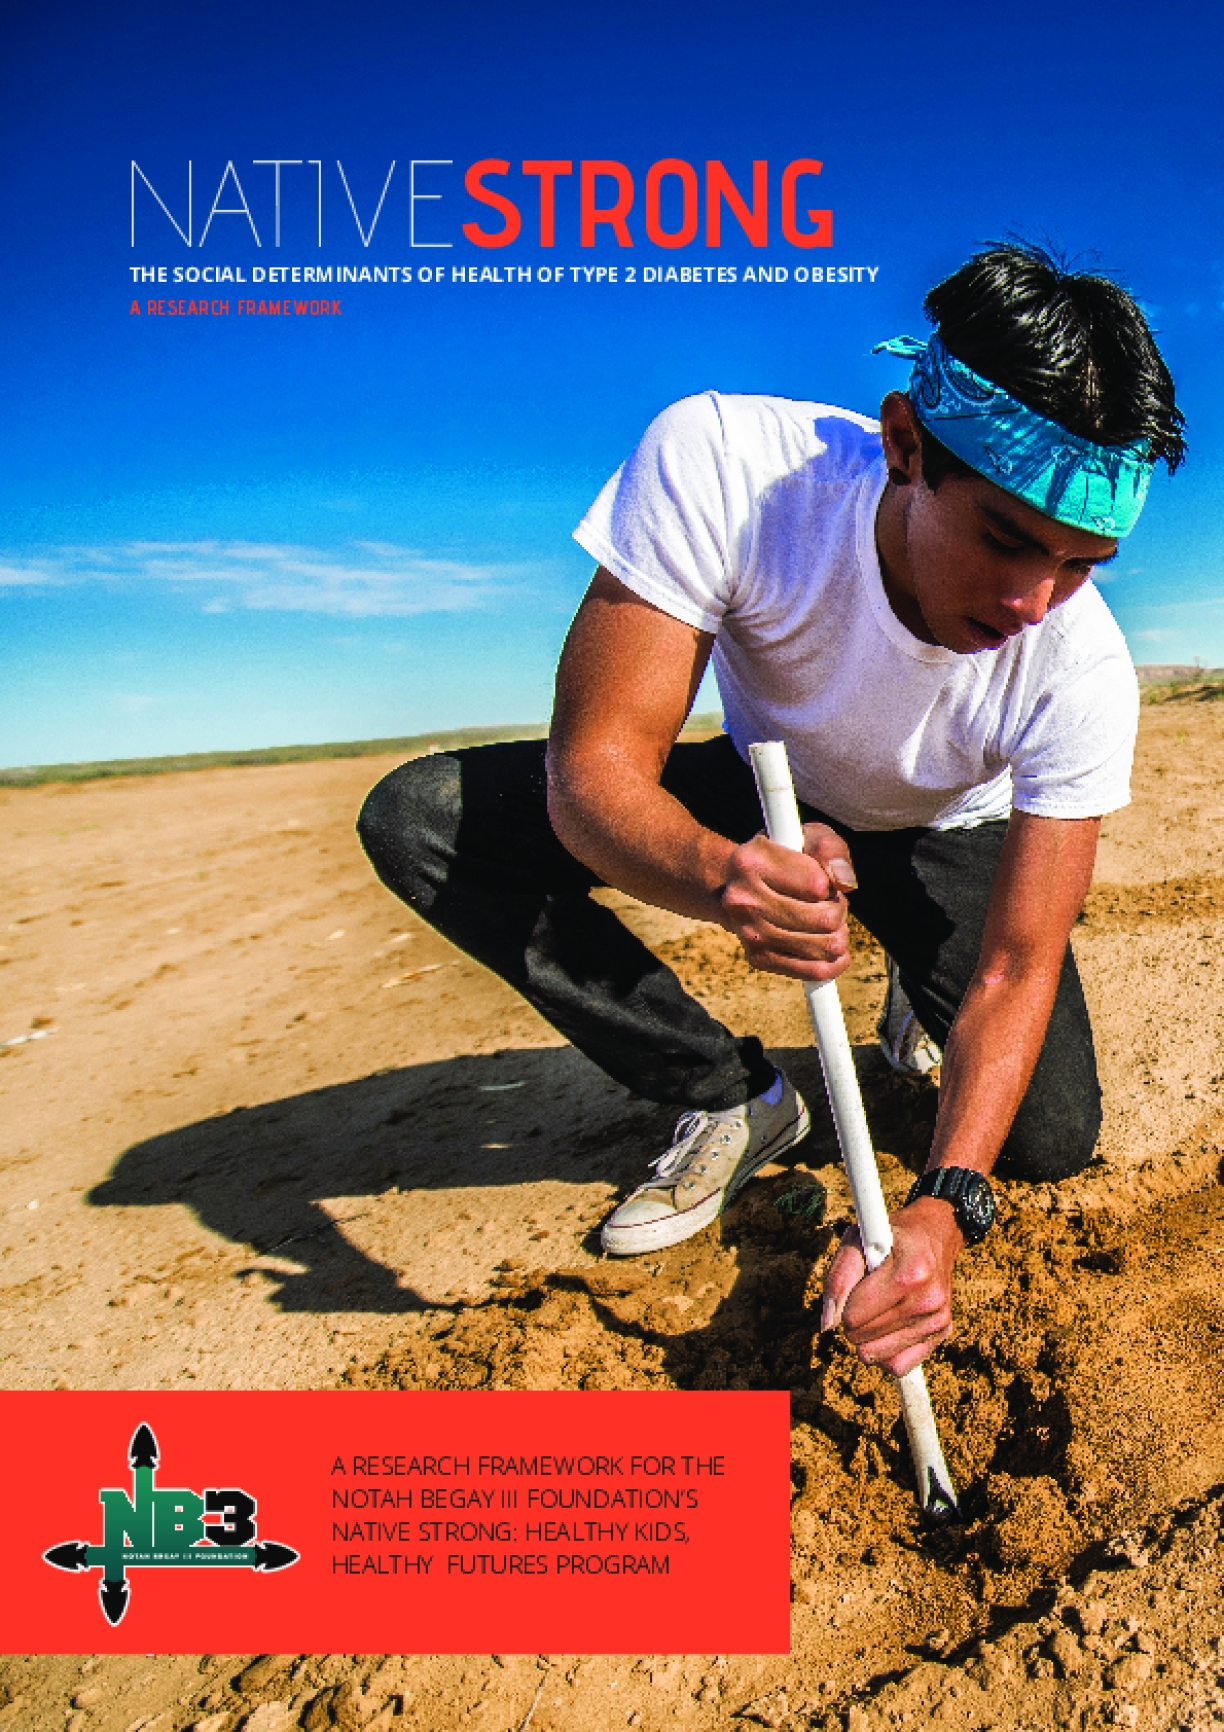 Native Strong: The Social Determinants of Health of Type 2 Diabetes and Obesity, A Research Framework